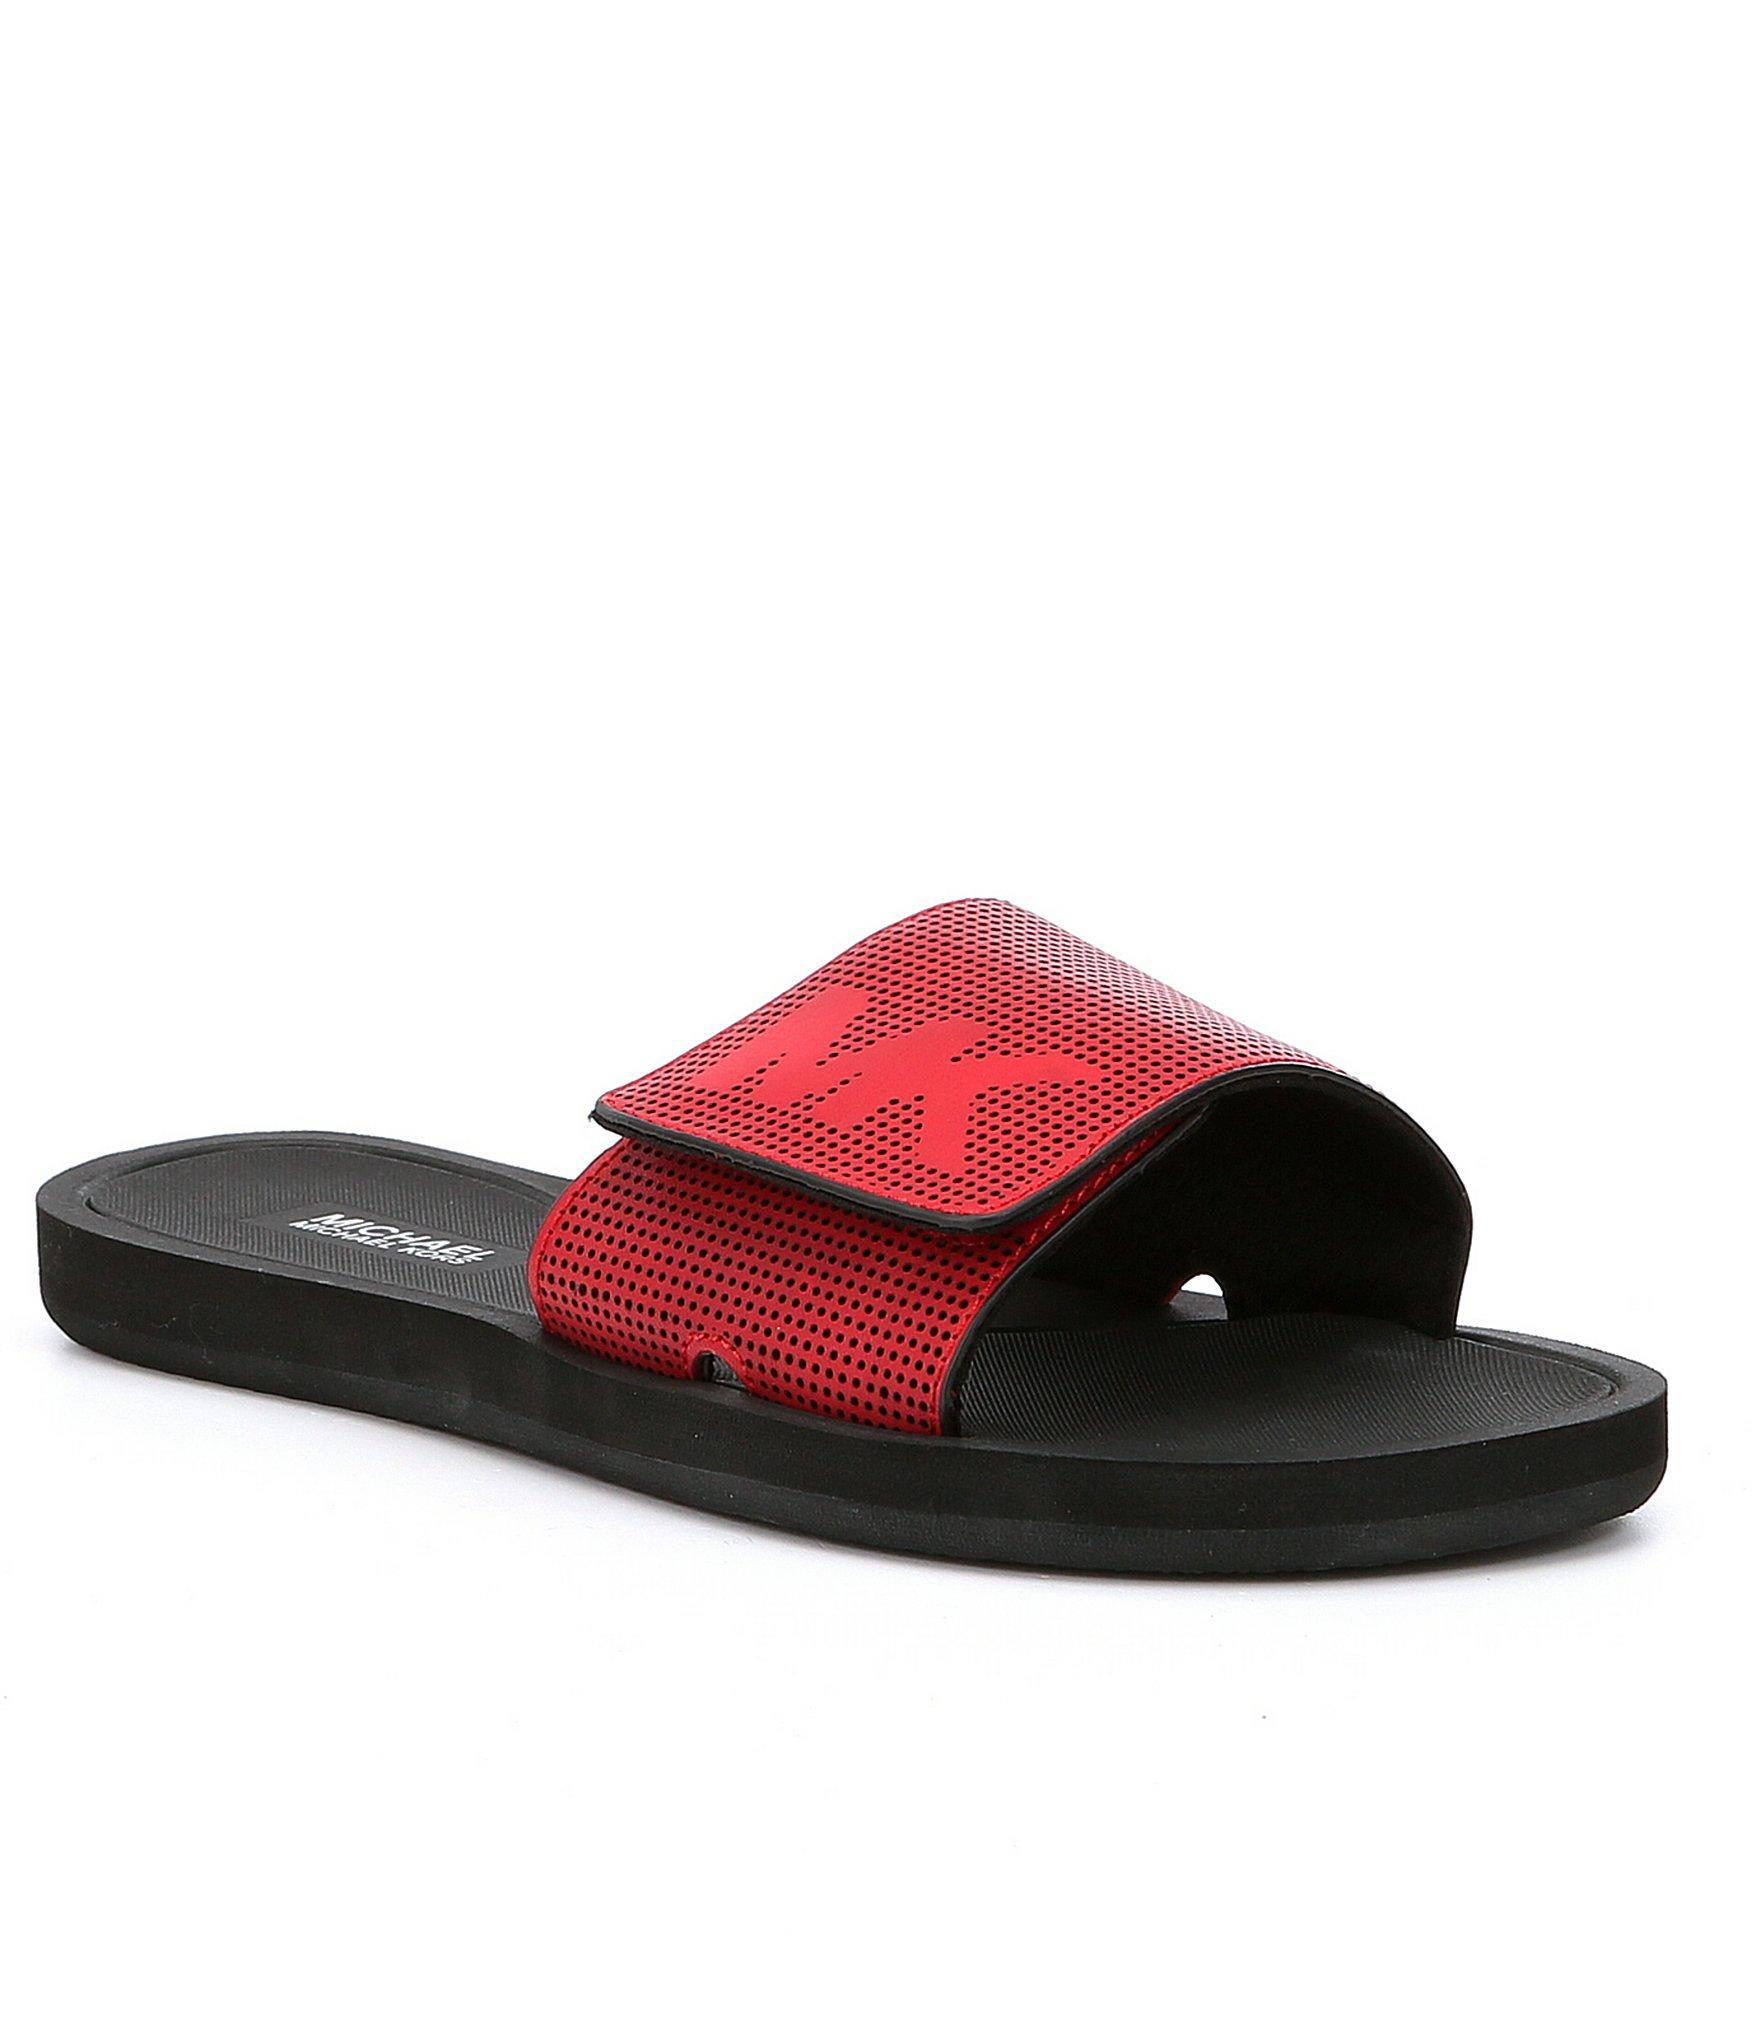 Forzieri Hogan Lyst - Michael Michael Kors Mk Slides Sandals In Red